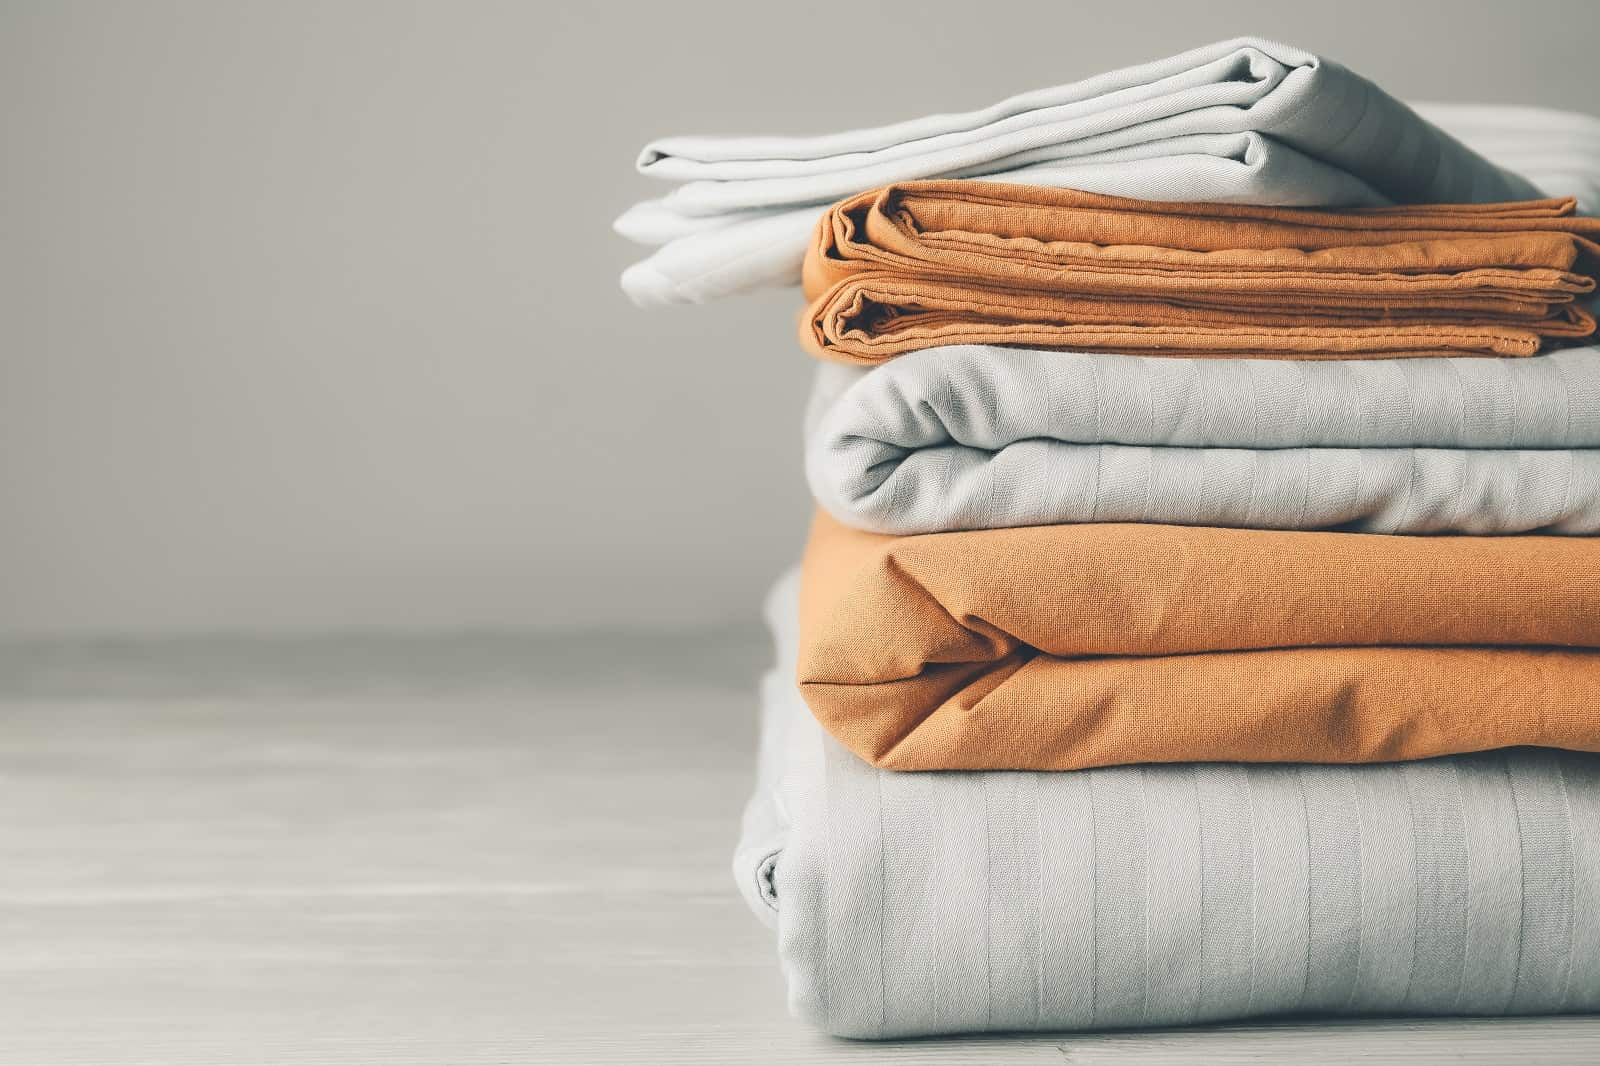 How To Find The Perfect Bedding For Your Room. Furled bedsheets of gray and orange colors